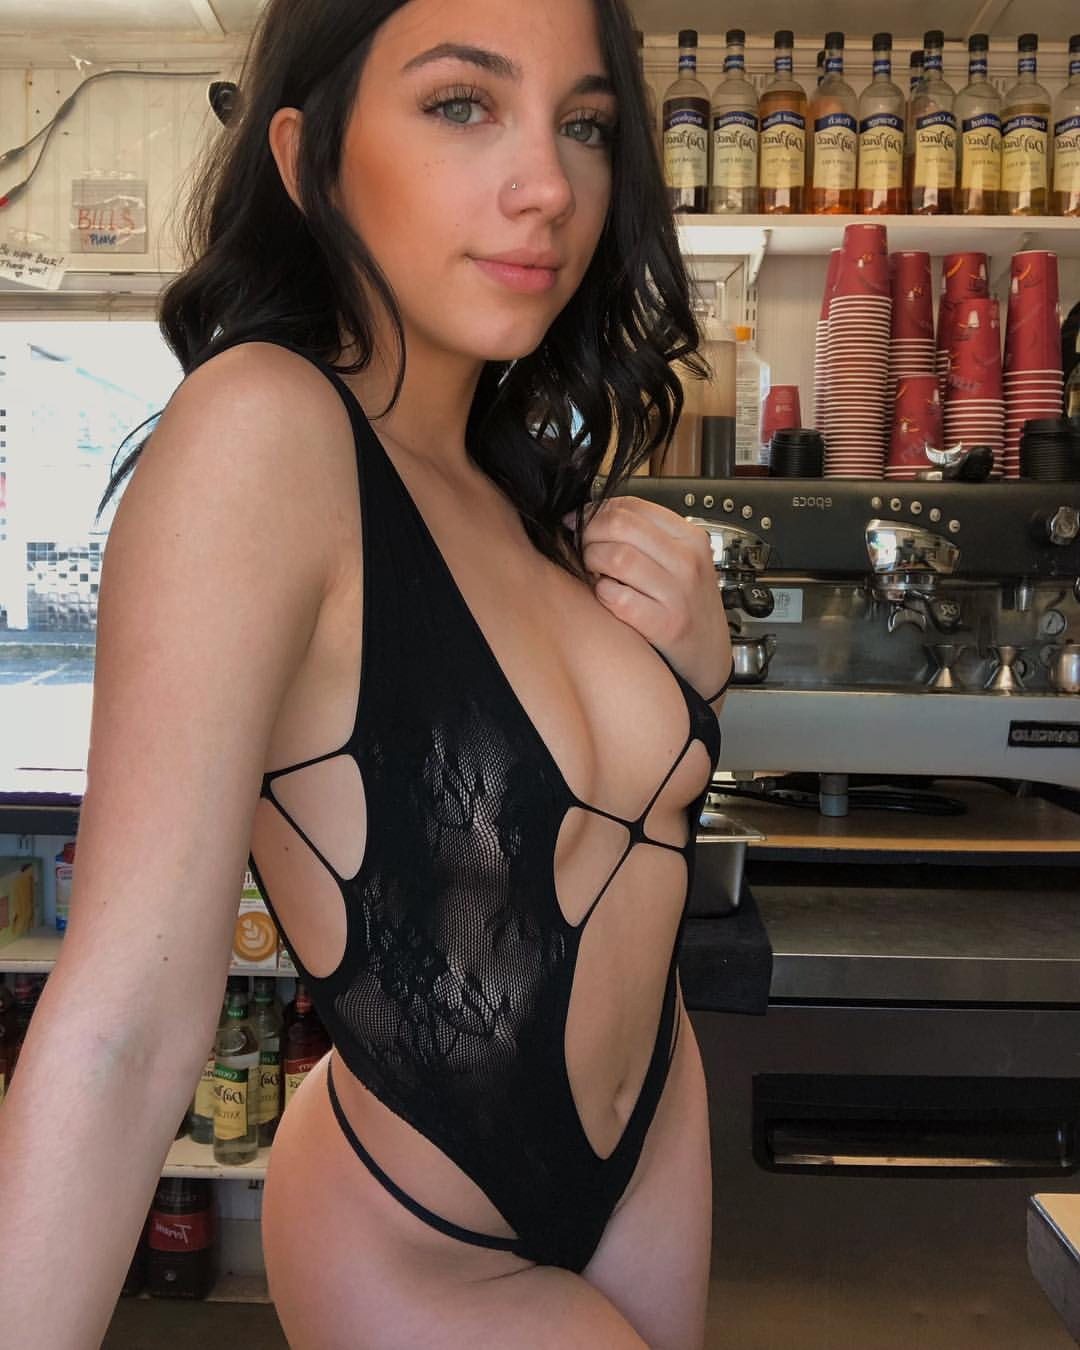 baristaalix Onlyfans Leaked Nude Photos fappenings.com 85